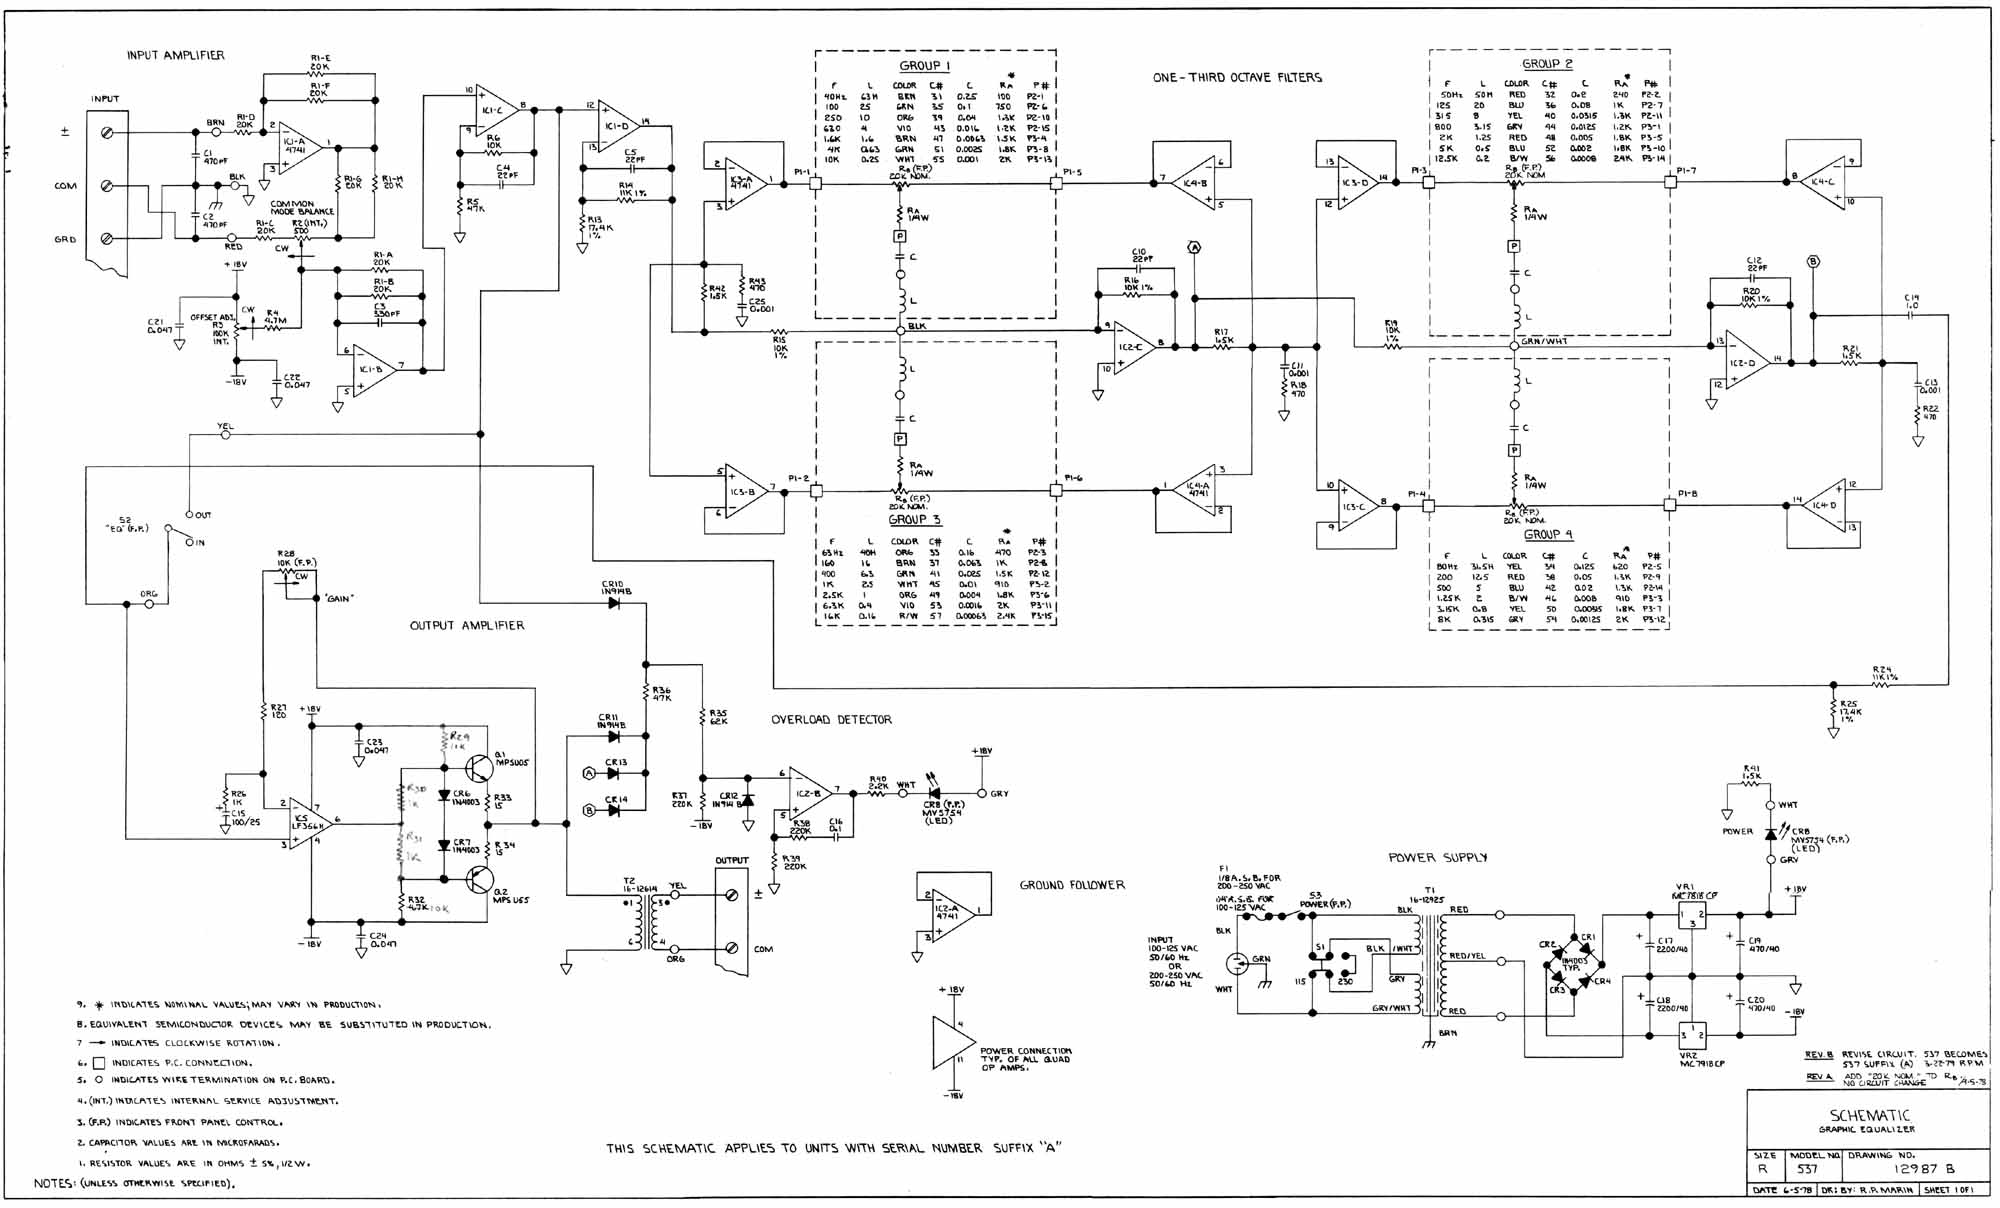 circuit diagram of non inverting amplifier how to draw automotive wiring diagrams > audio equalizers graphic equaliser 537 l141 - next.gr